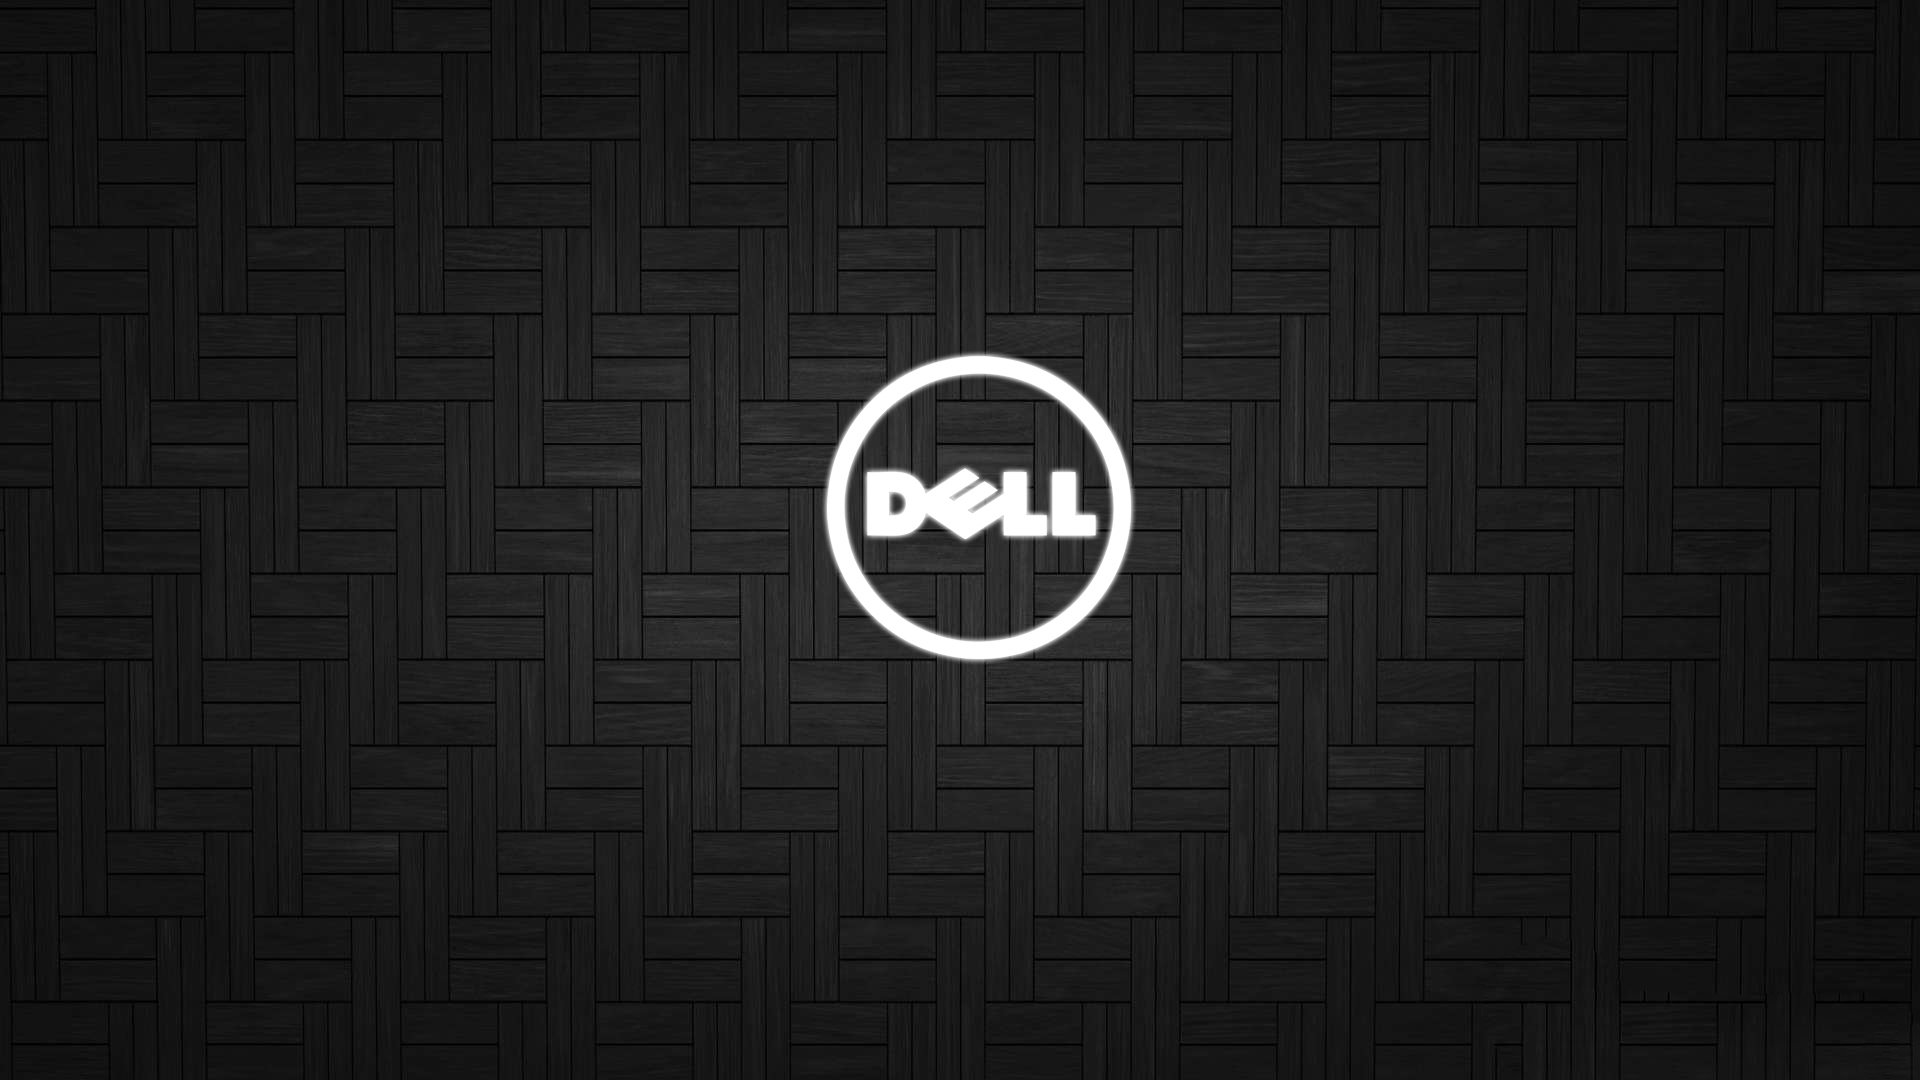 Download full hd Dell PC background ID:39722 for free